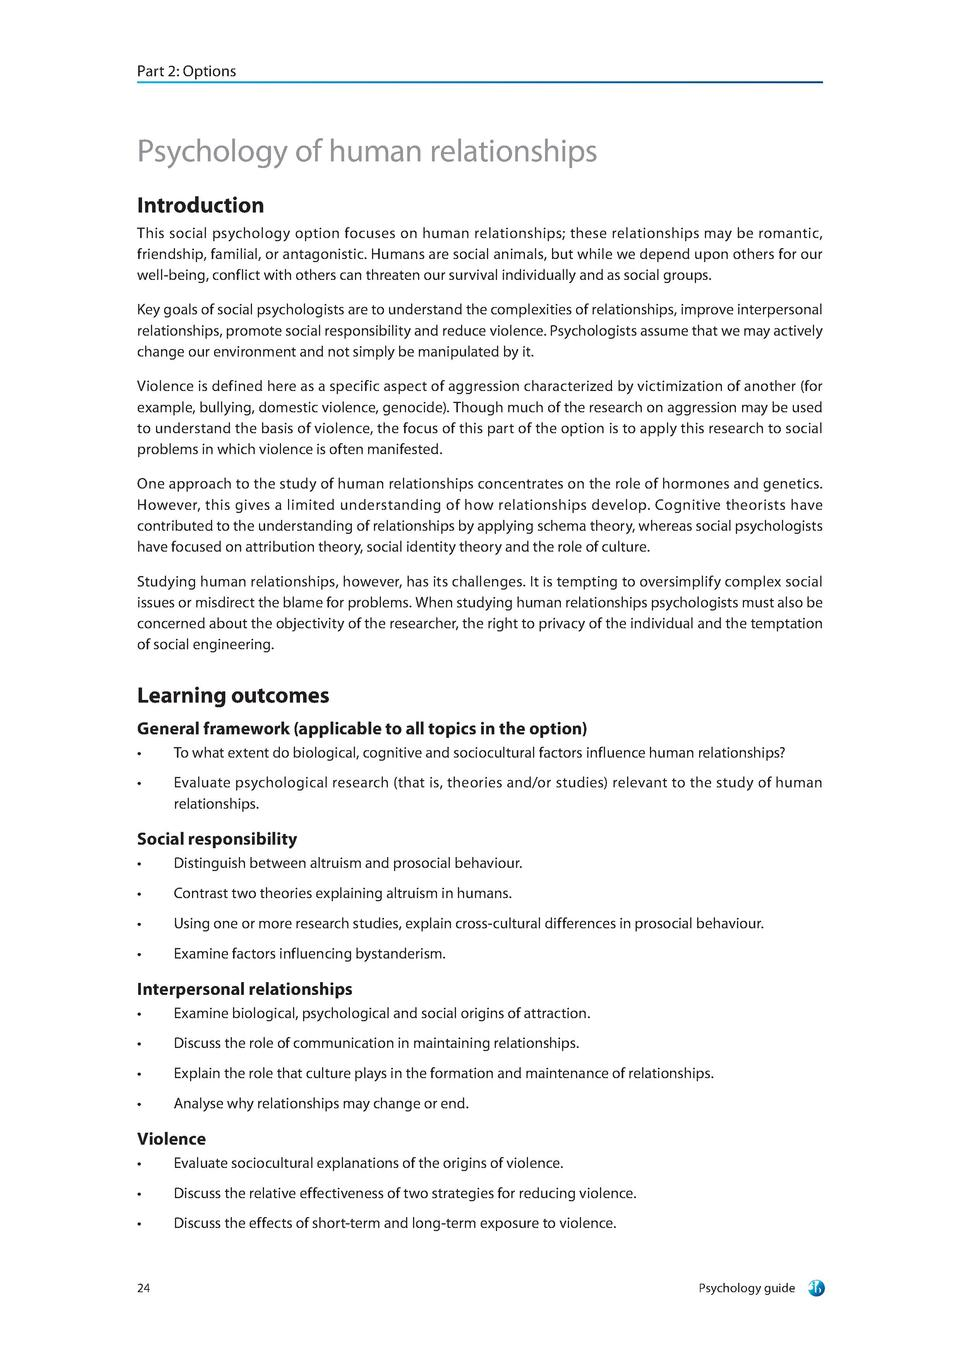 ib psychology human relationships essays The ib extended essay (or ee) is a 4,000 word structured mini-thesis that you write under the supervision of an advisor (an ib teacher at your school), which counts towards your ib diploma (to learn about all of the ib diploma requirements, check out our other article.